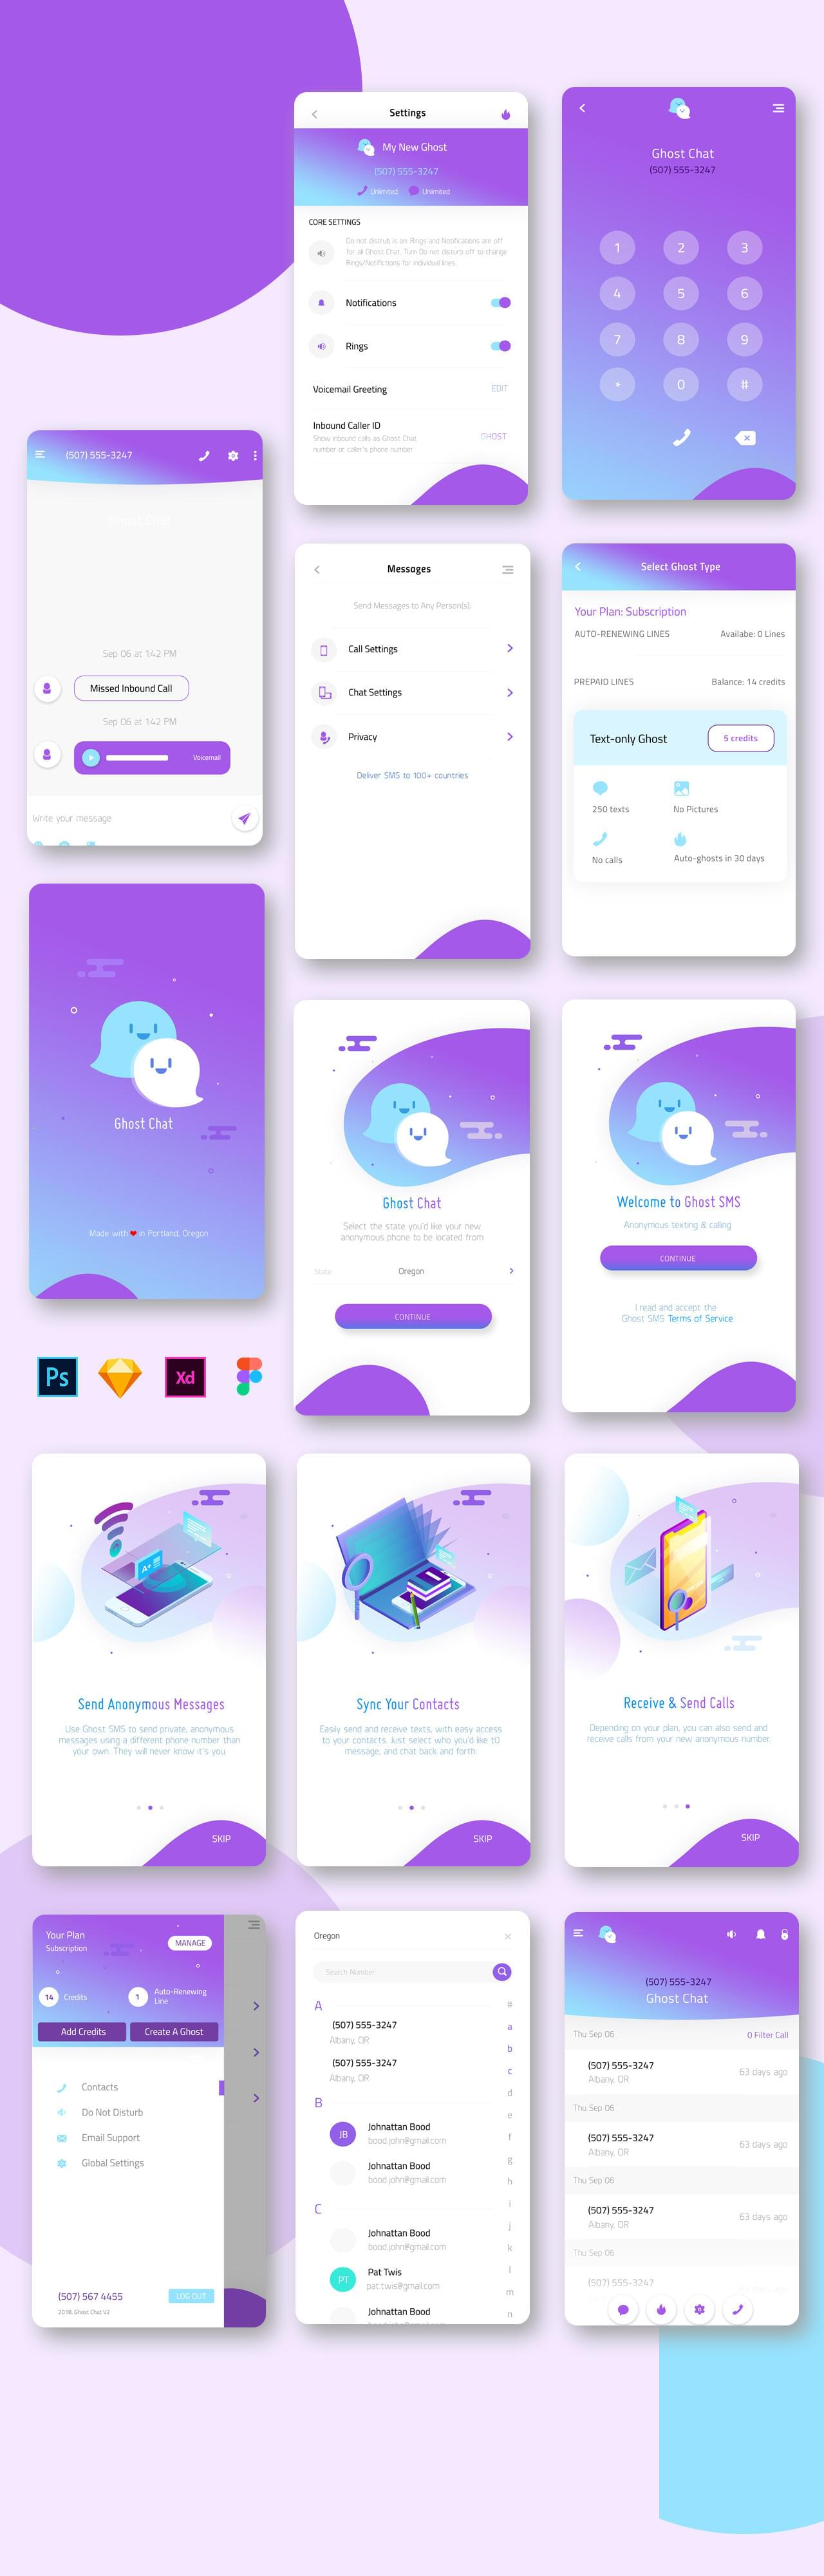 Mobile App interface UI/UX for iOS and Android design by idesignera - 116705